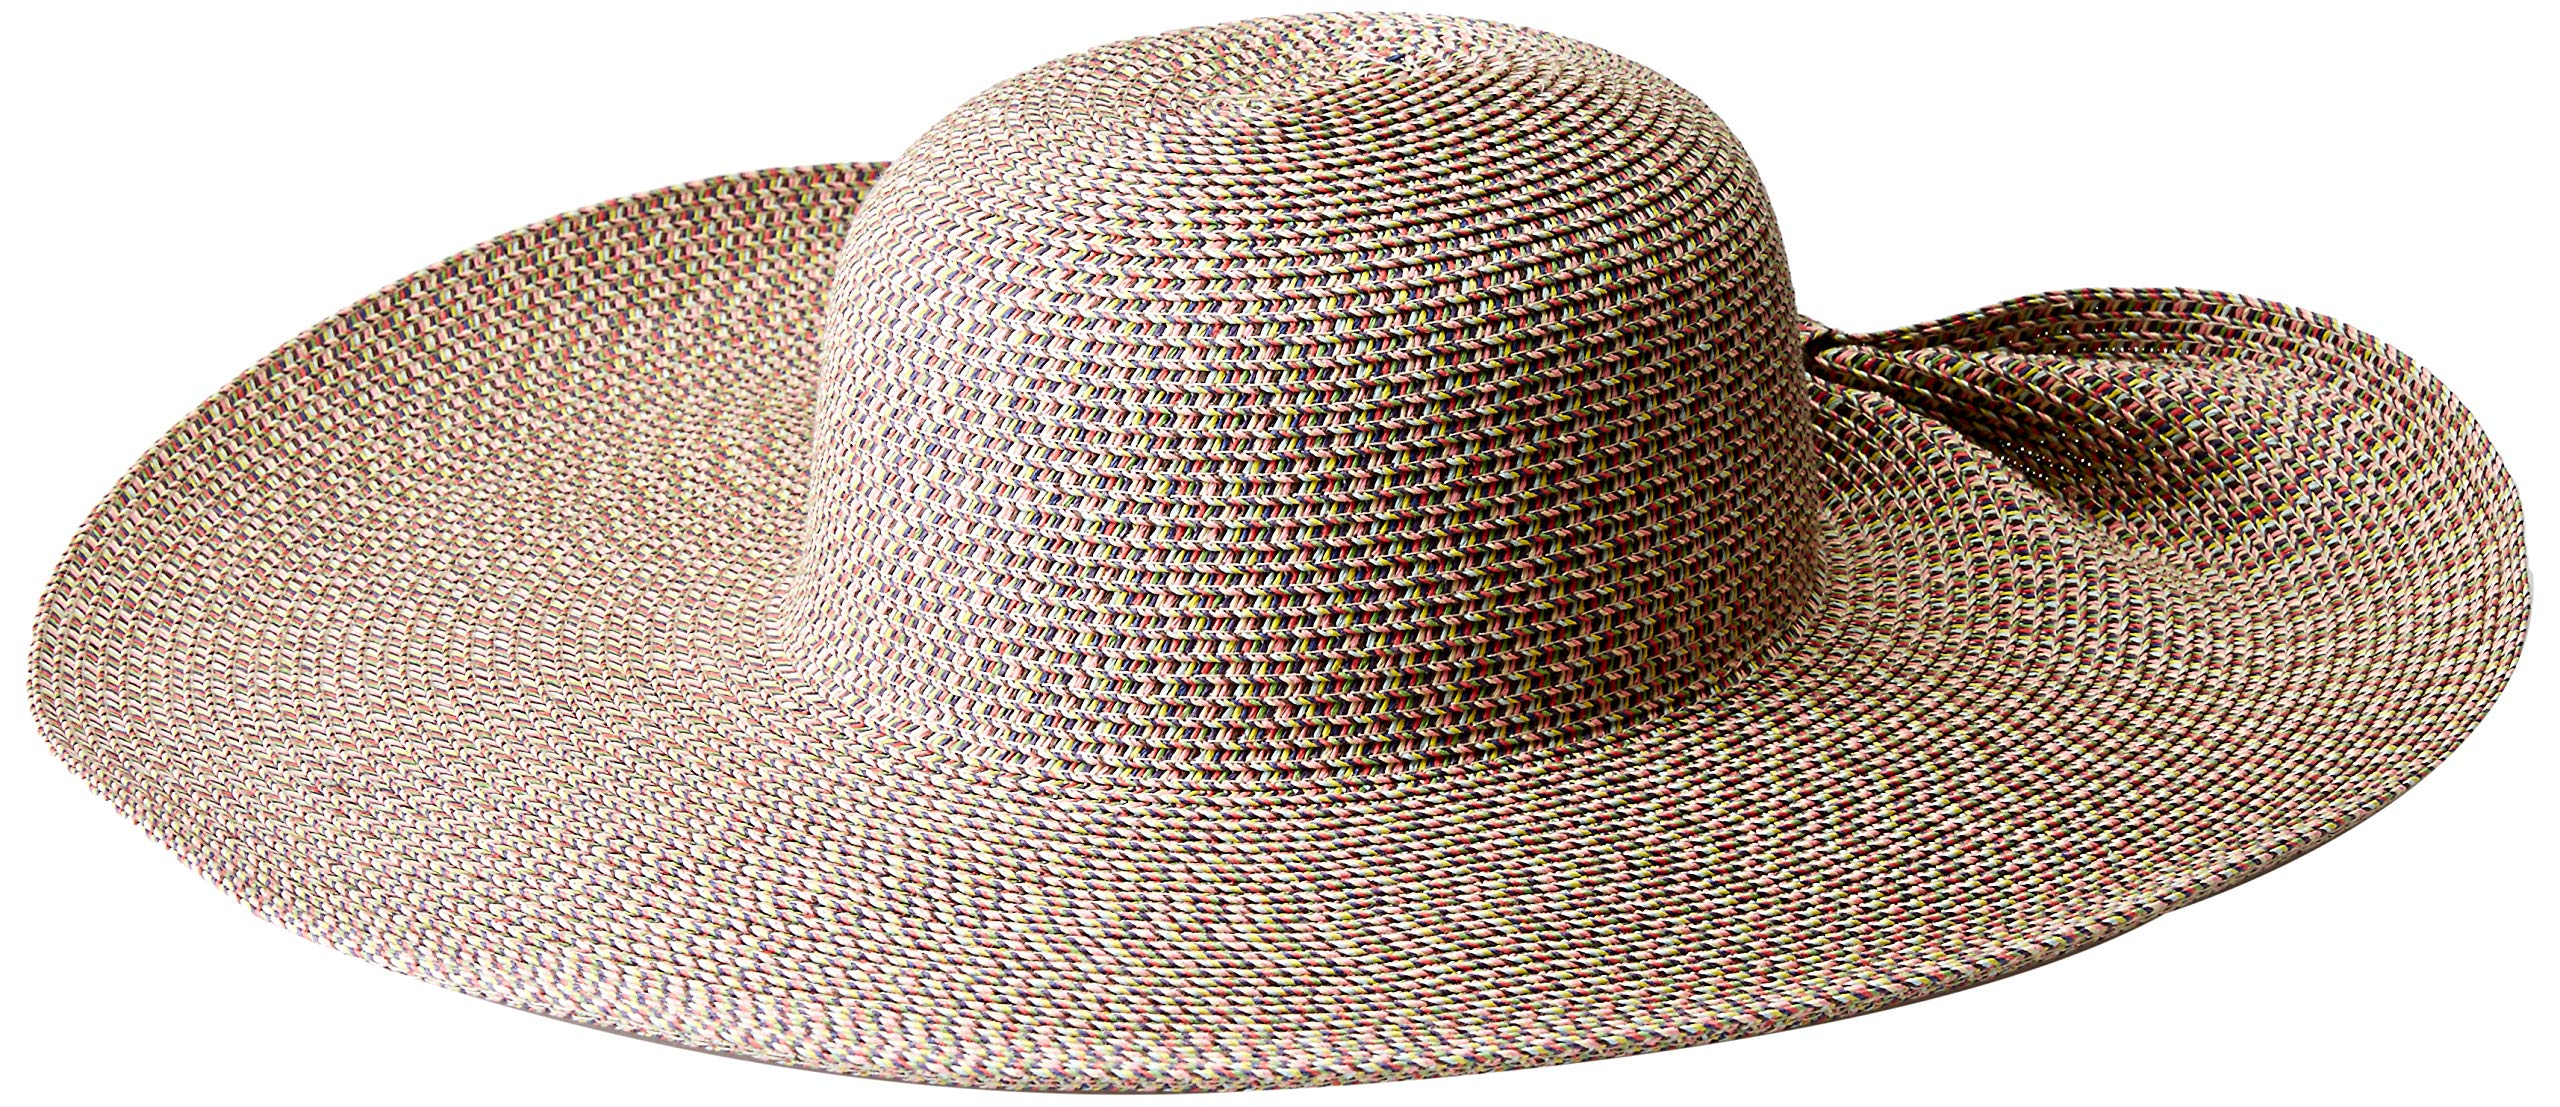 San Diego Hat Co. Women's UBL6487OSMLT, Multi, One Size by San Diego Hat Company